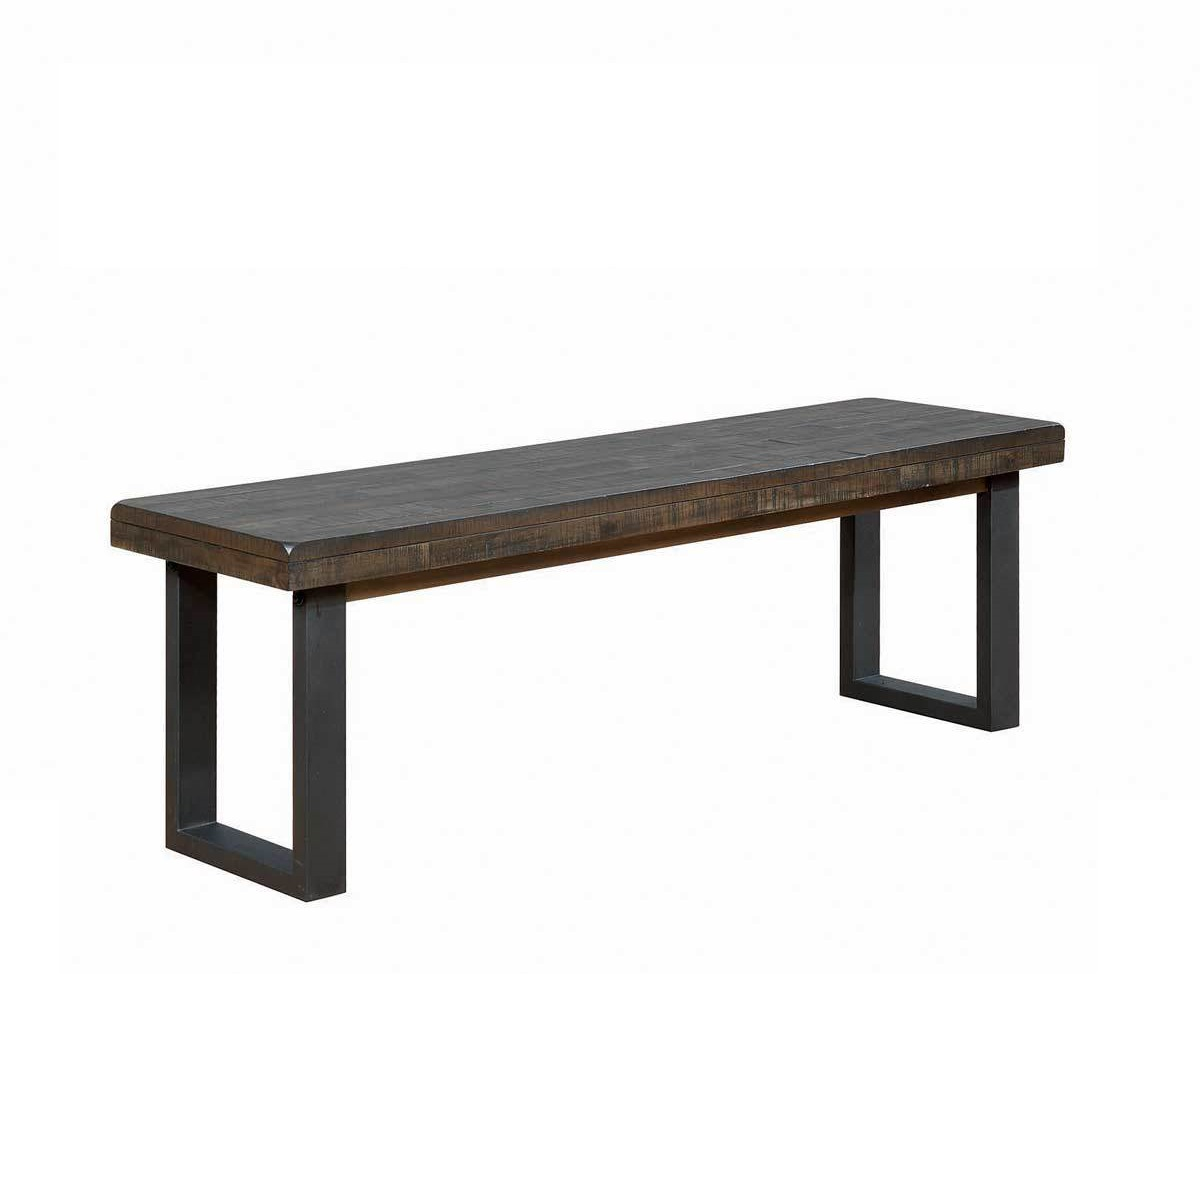 Charmant Modern Rustic Dining Bench